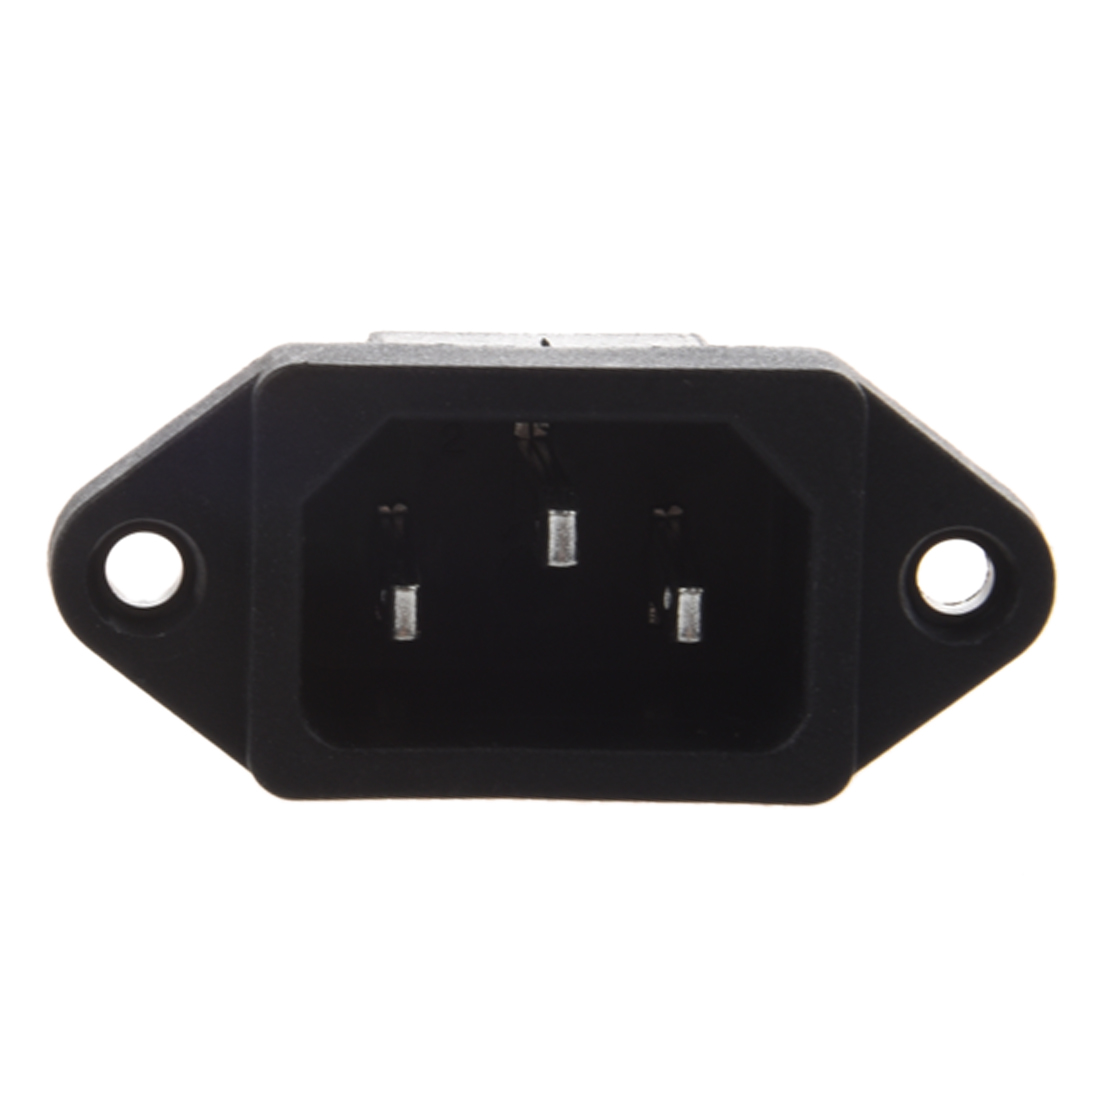 2018 YHYS - Hot IEC 320 C14 Male Plug 3 Pins PCB Screw Type Panel Power Inlet Socket Connector 1 Pc AC 250V 10A Plastic Metal anker powerport wireless 5